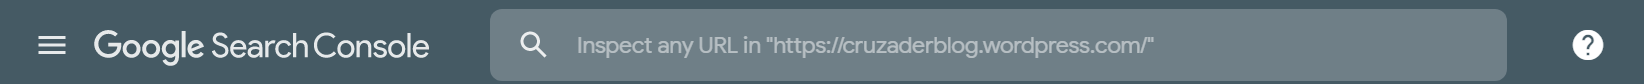 Ask Google to recrawl your URLs search console- url inspect on top search bar